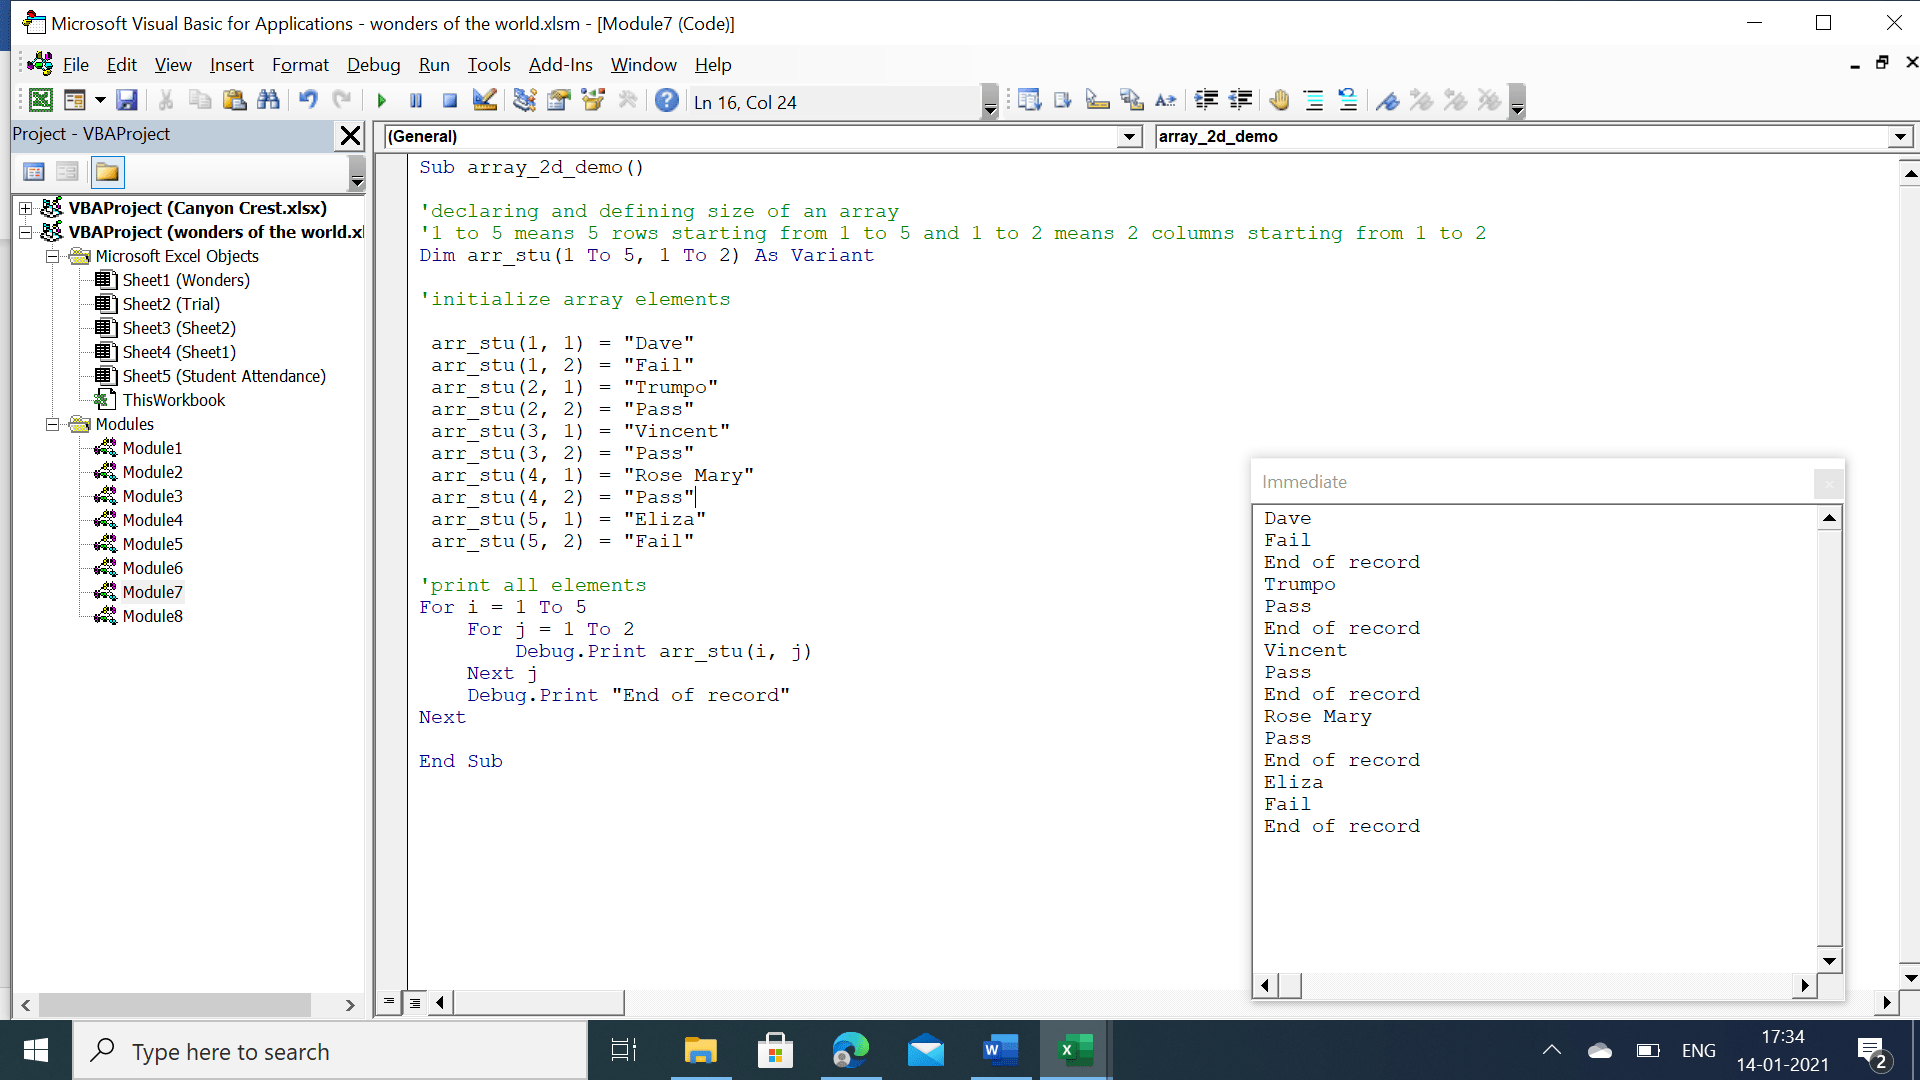 Nested for loop output